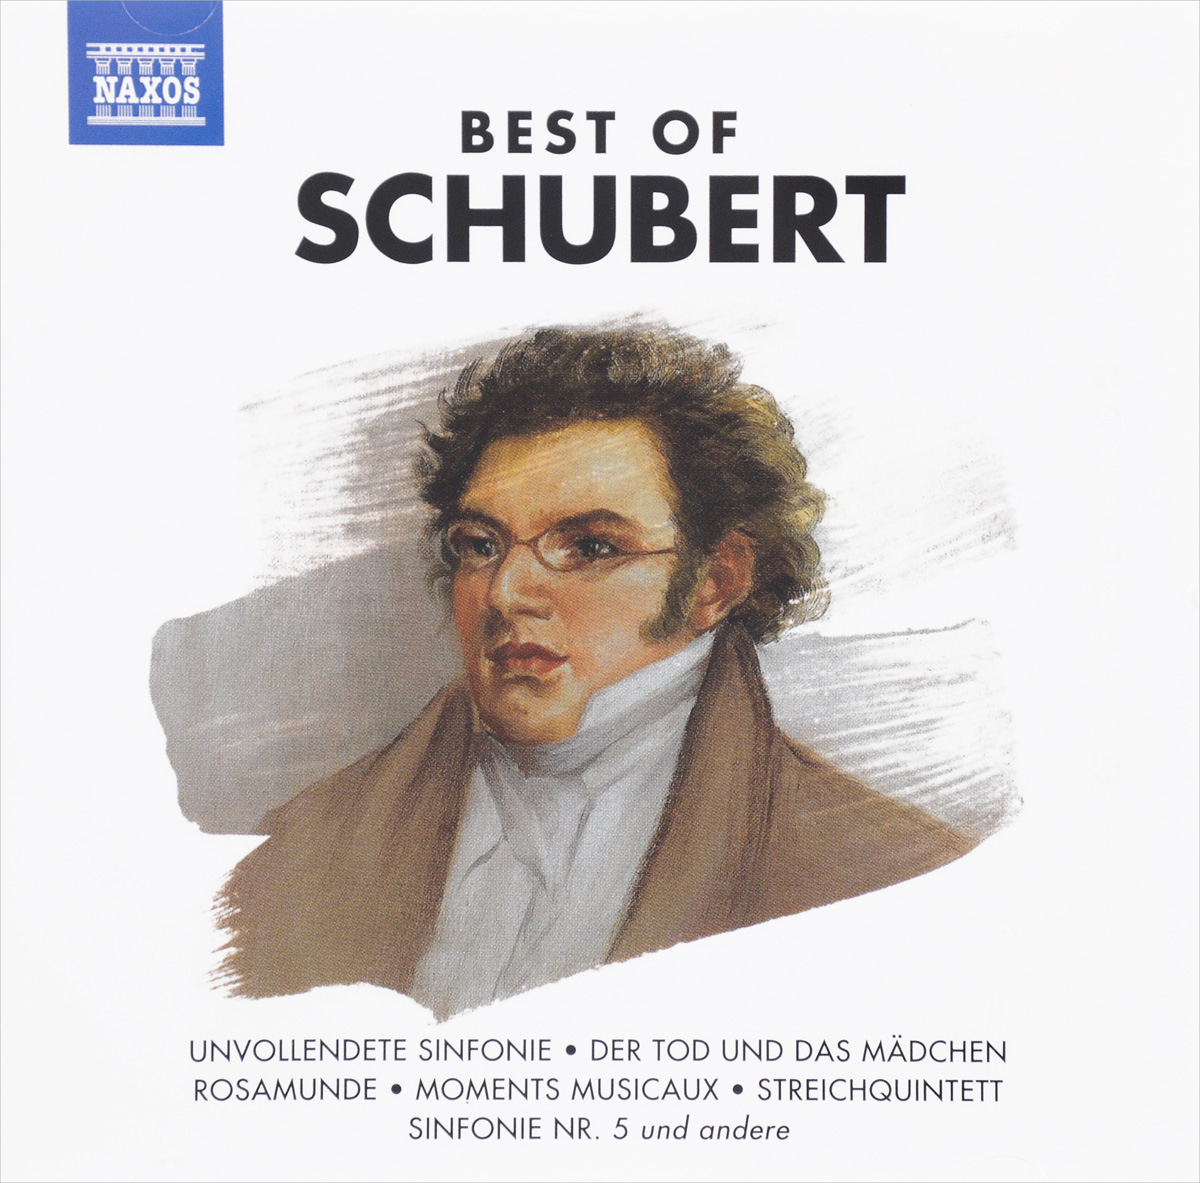 Франц Шуберт Best Of Schubert франц шуберт schubert symphonie no 9 rosamunde ouverture die zauberharfe